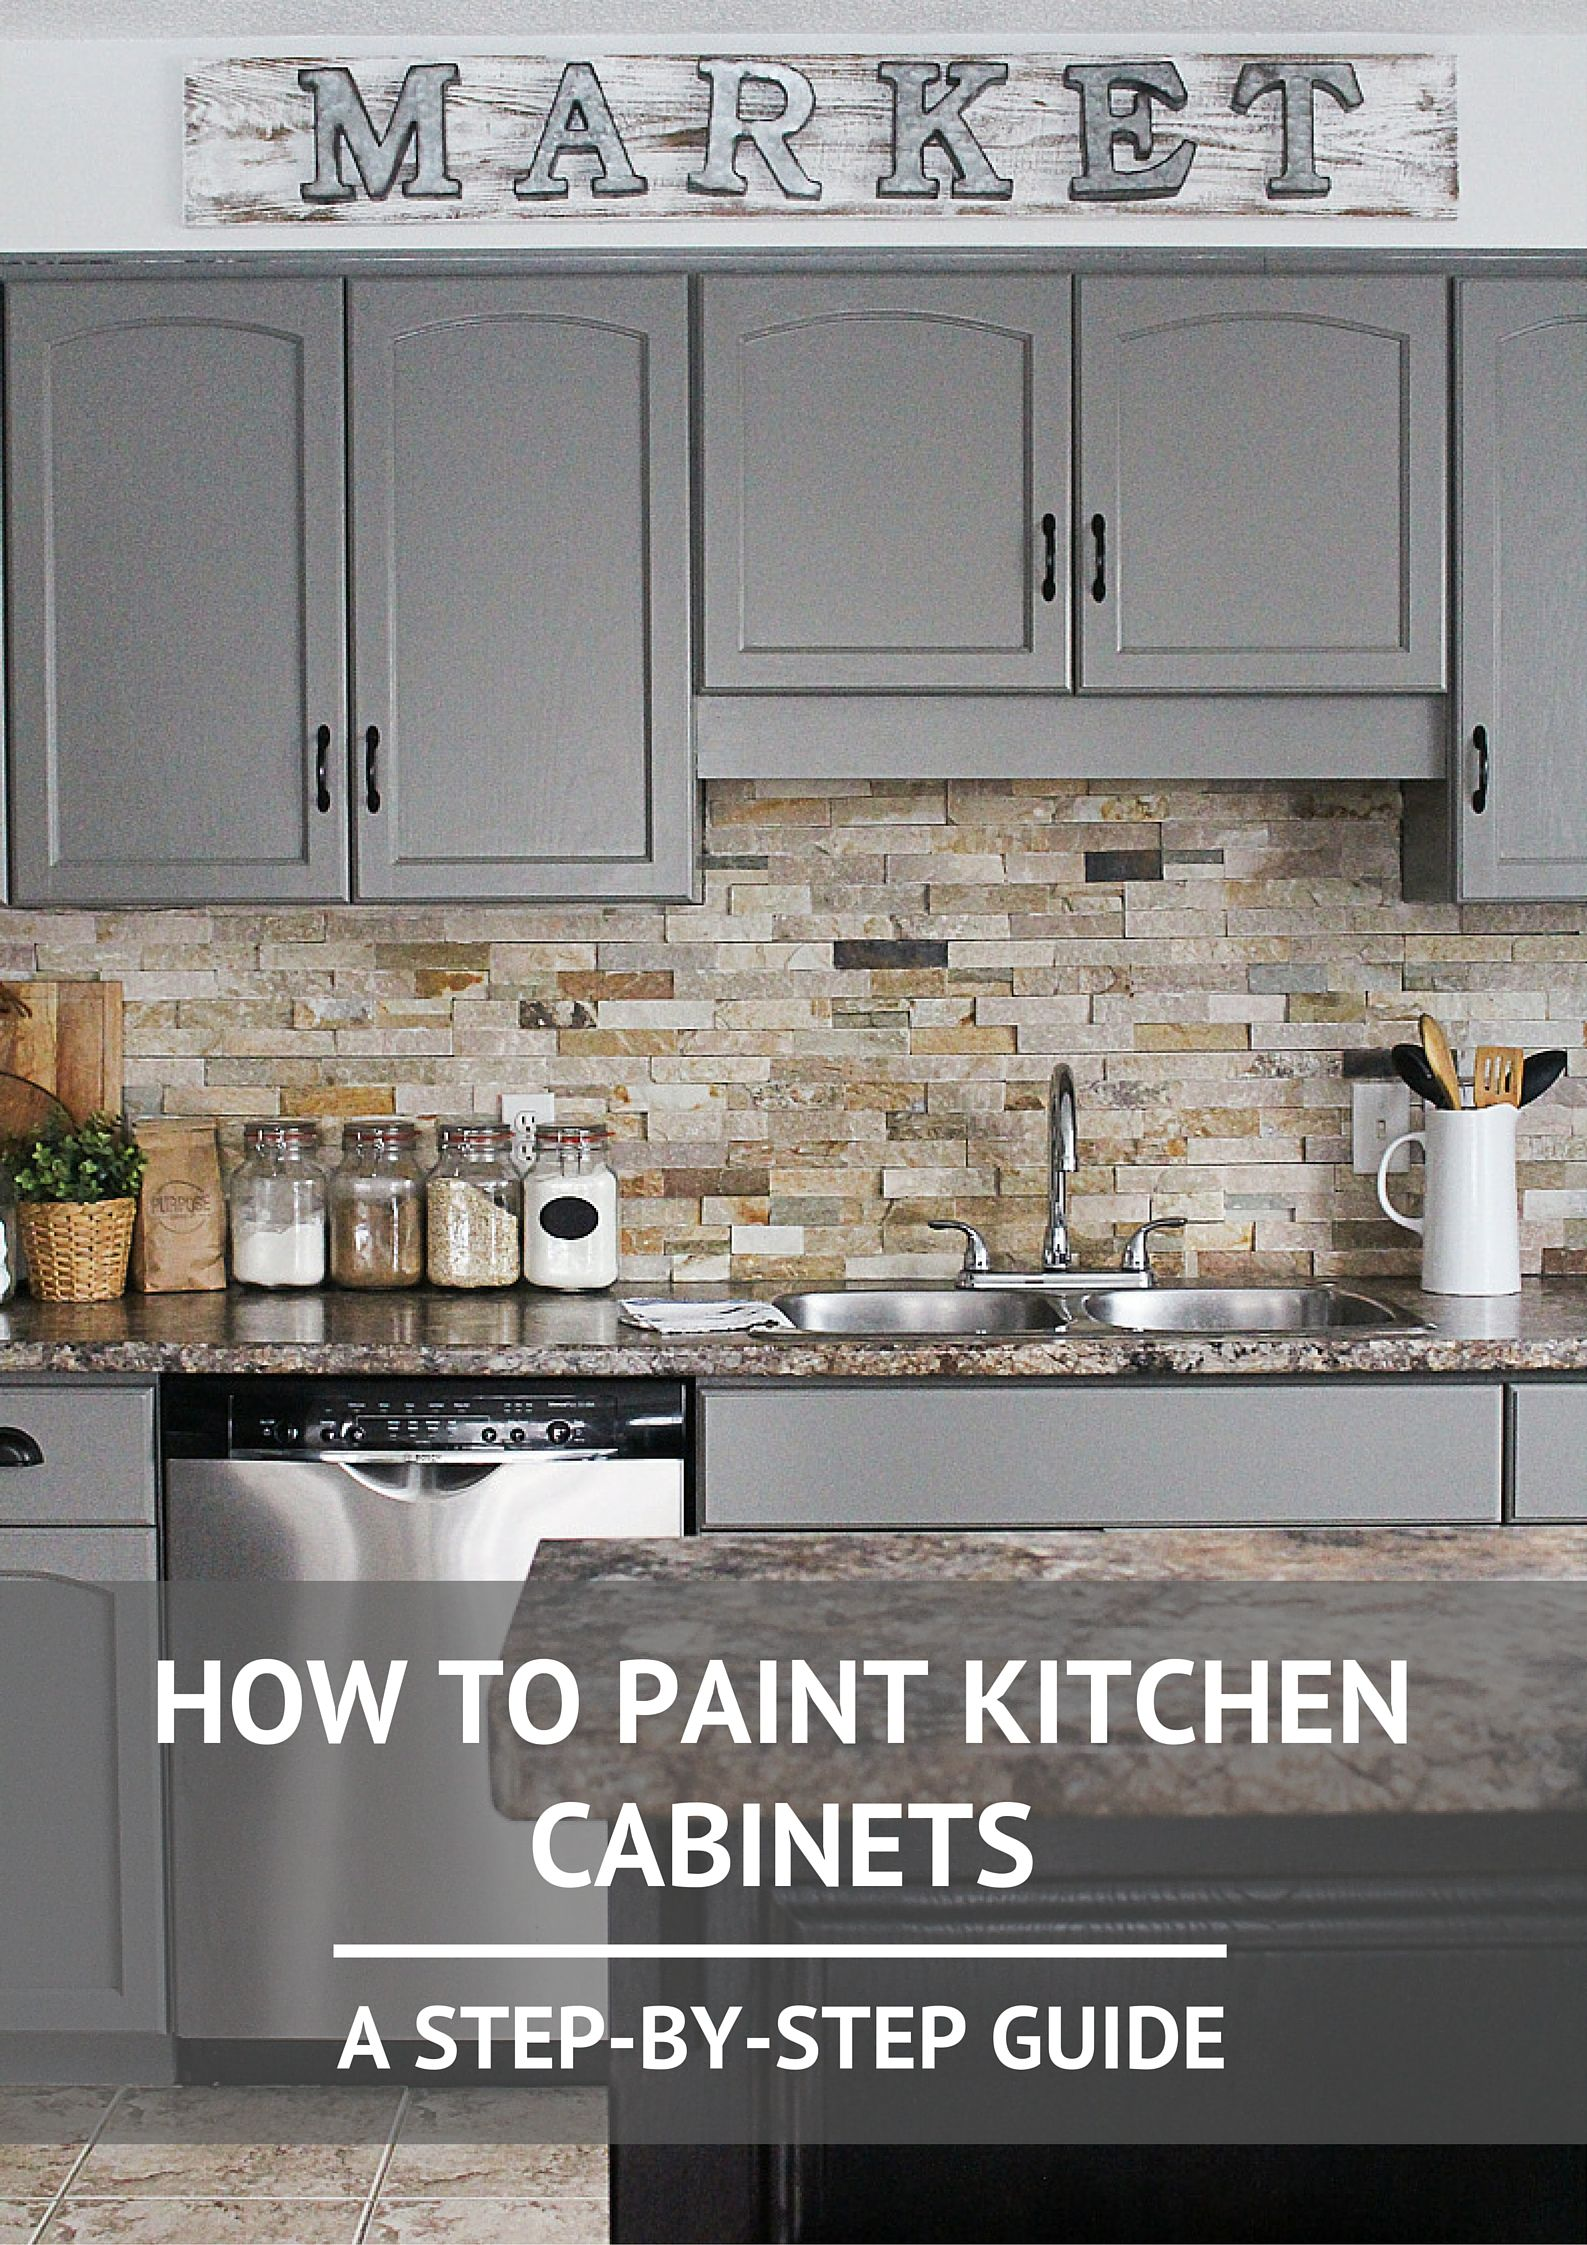 Paint My Kitchen Cabinets How To Paint Kitchen Cabinets Home Kitchen Paint Kitchen